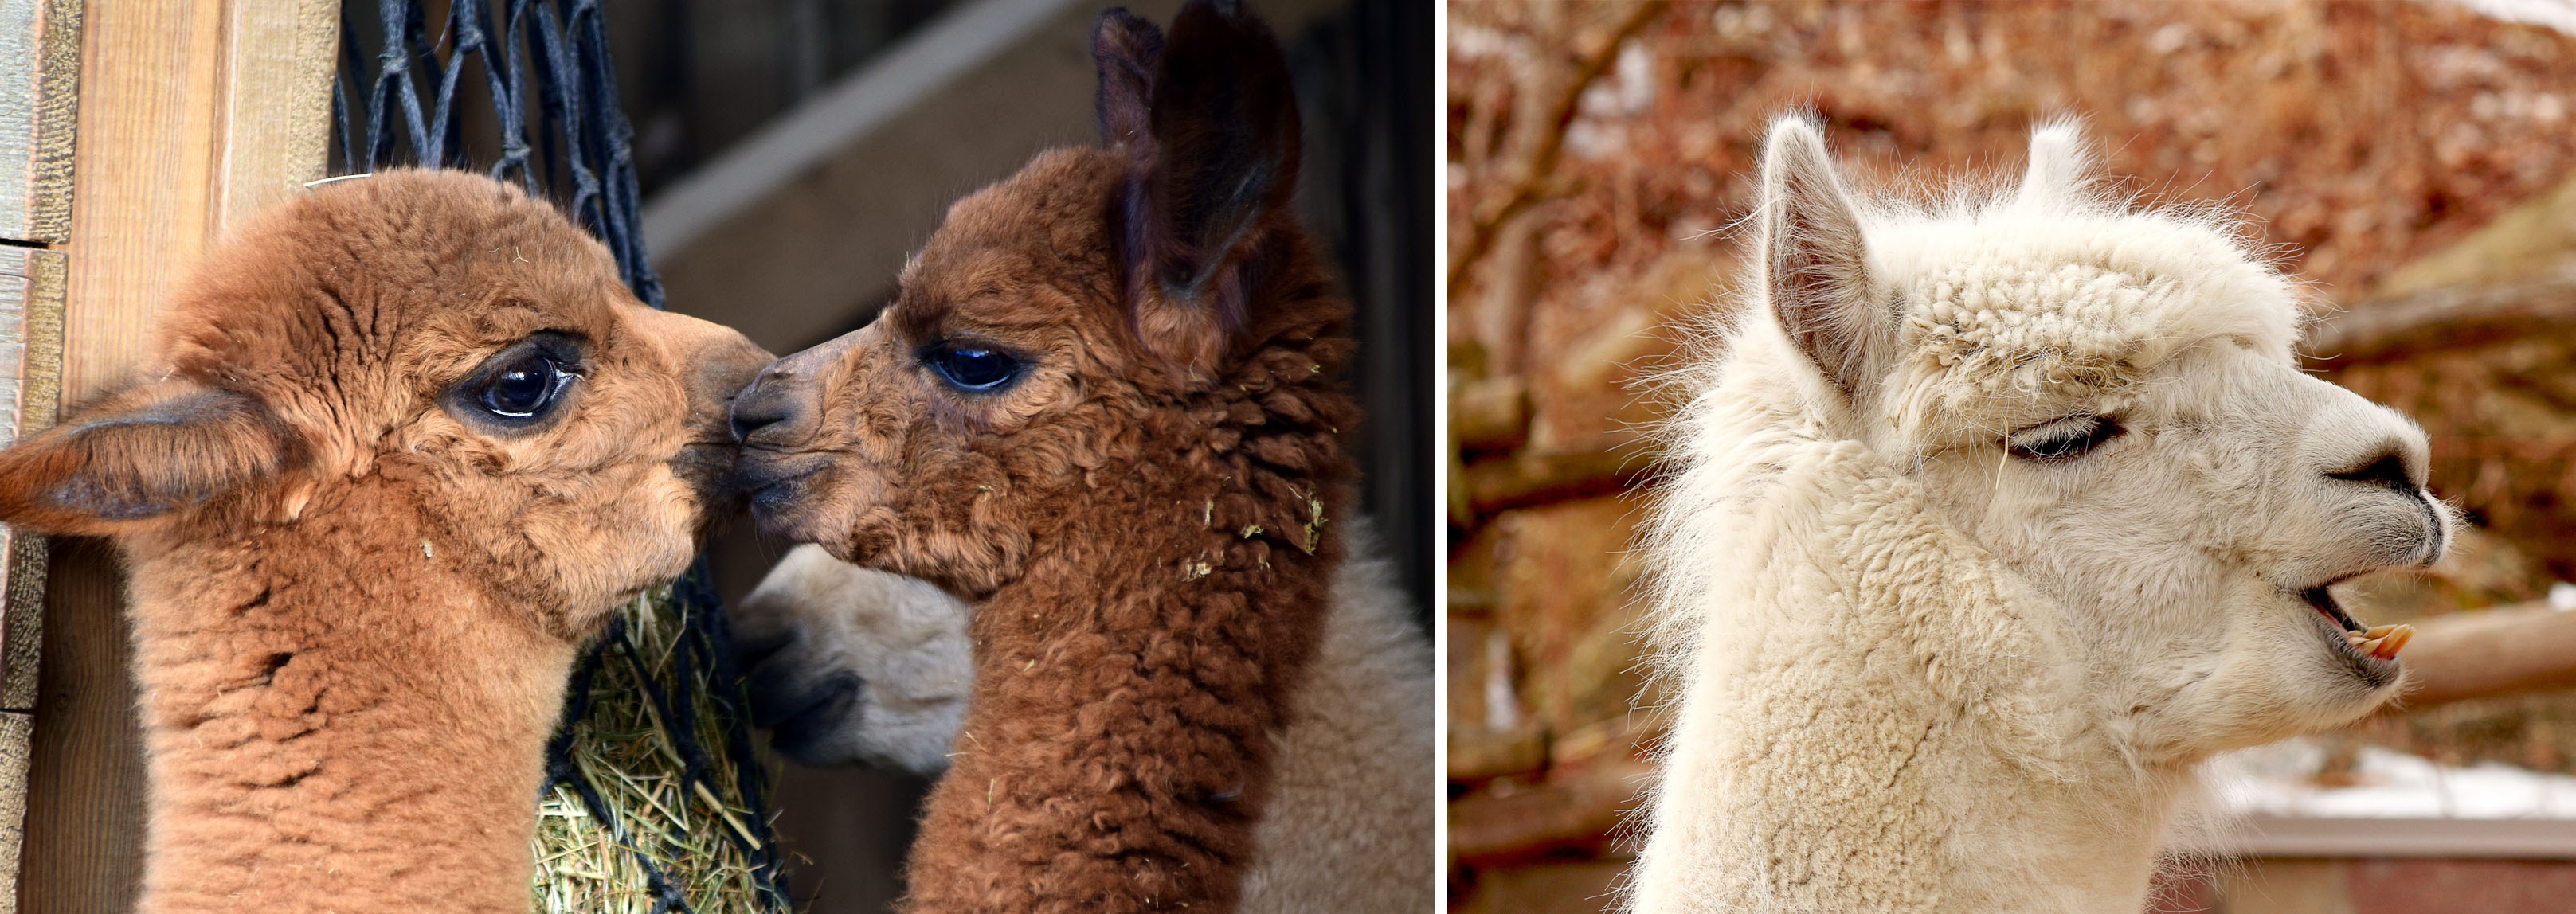 Cute Alpacas in Perth, Western Australia